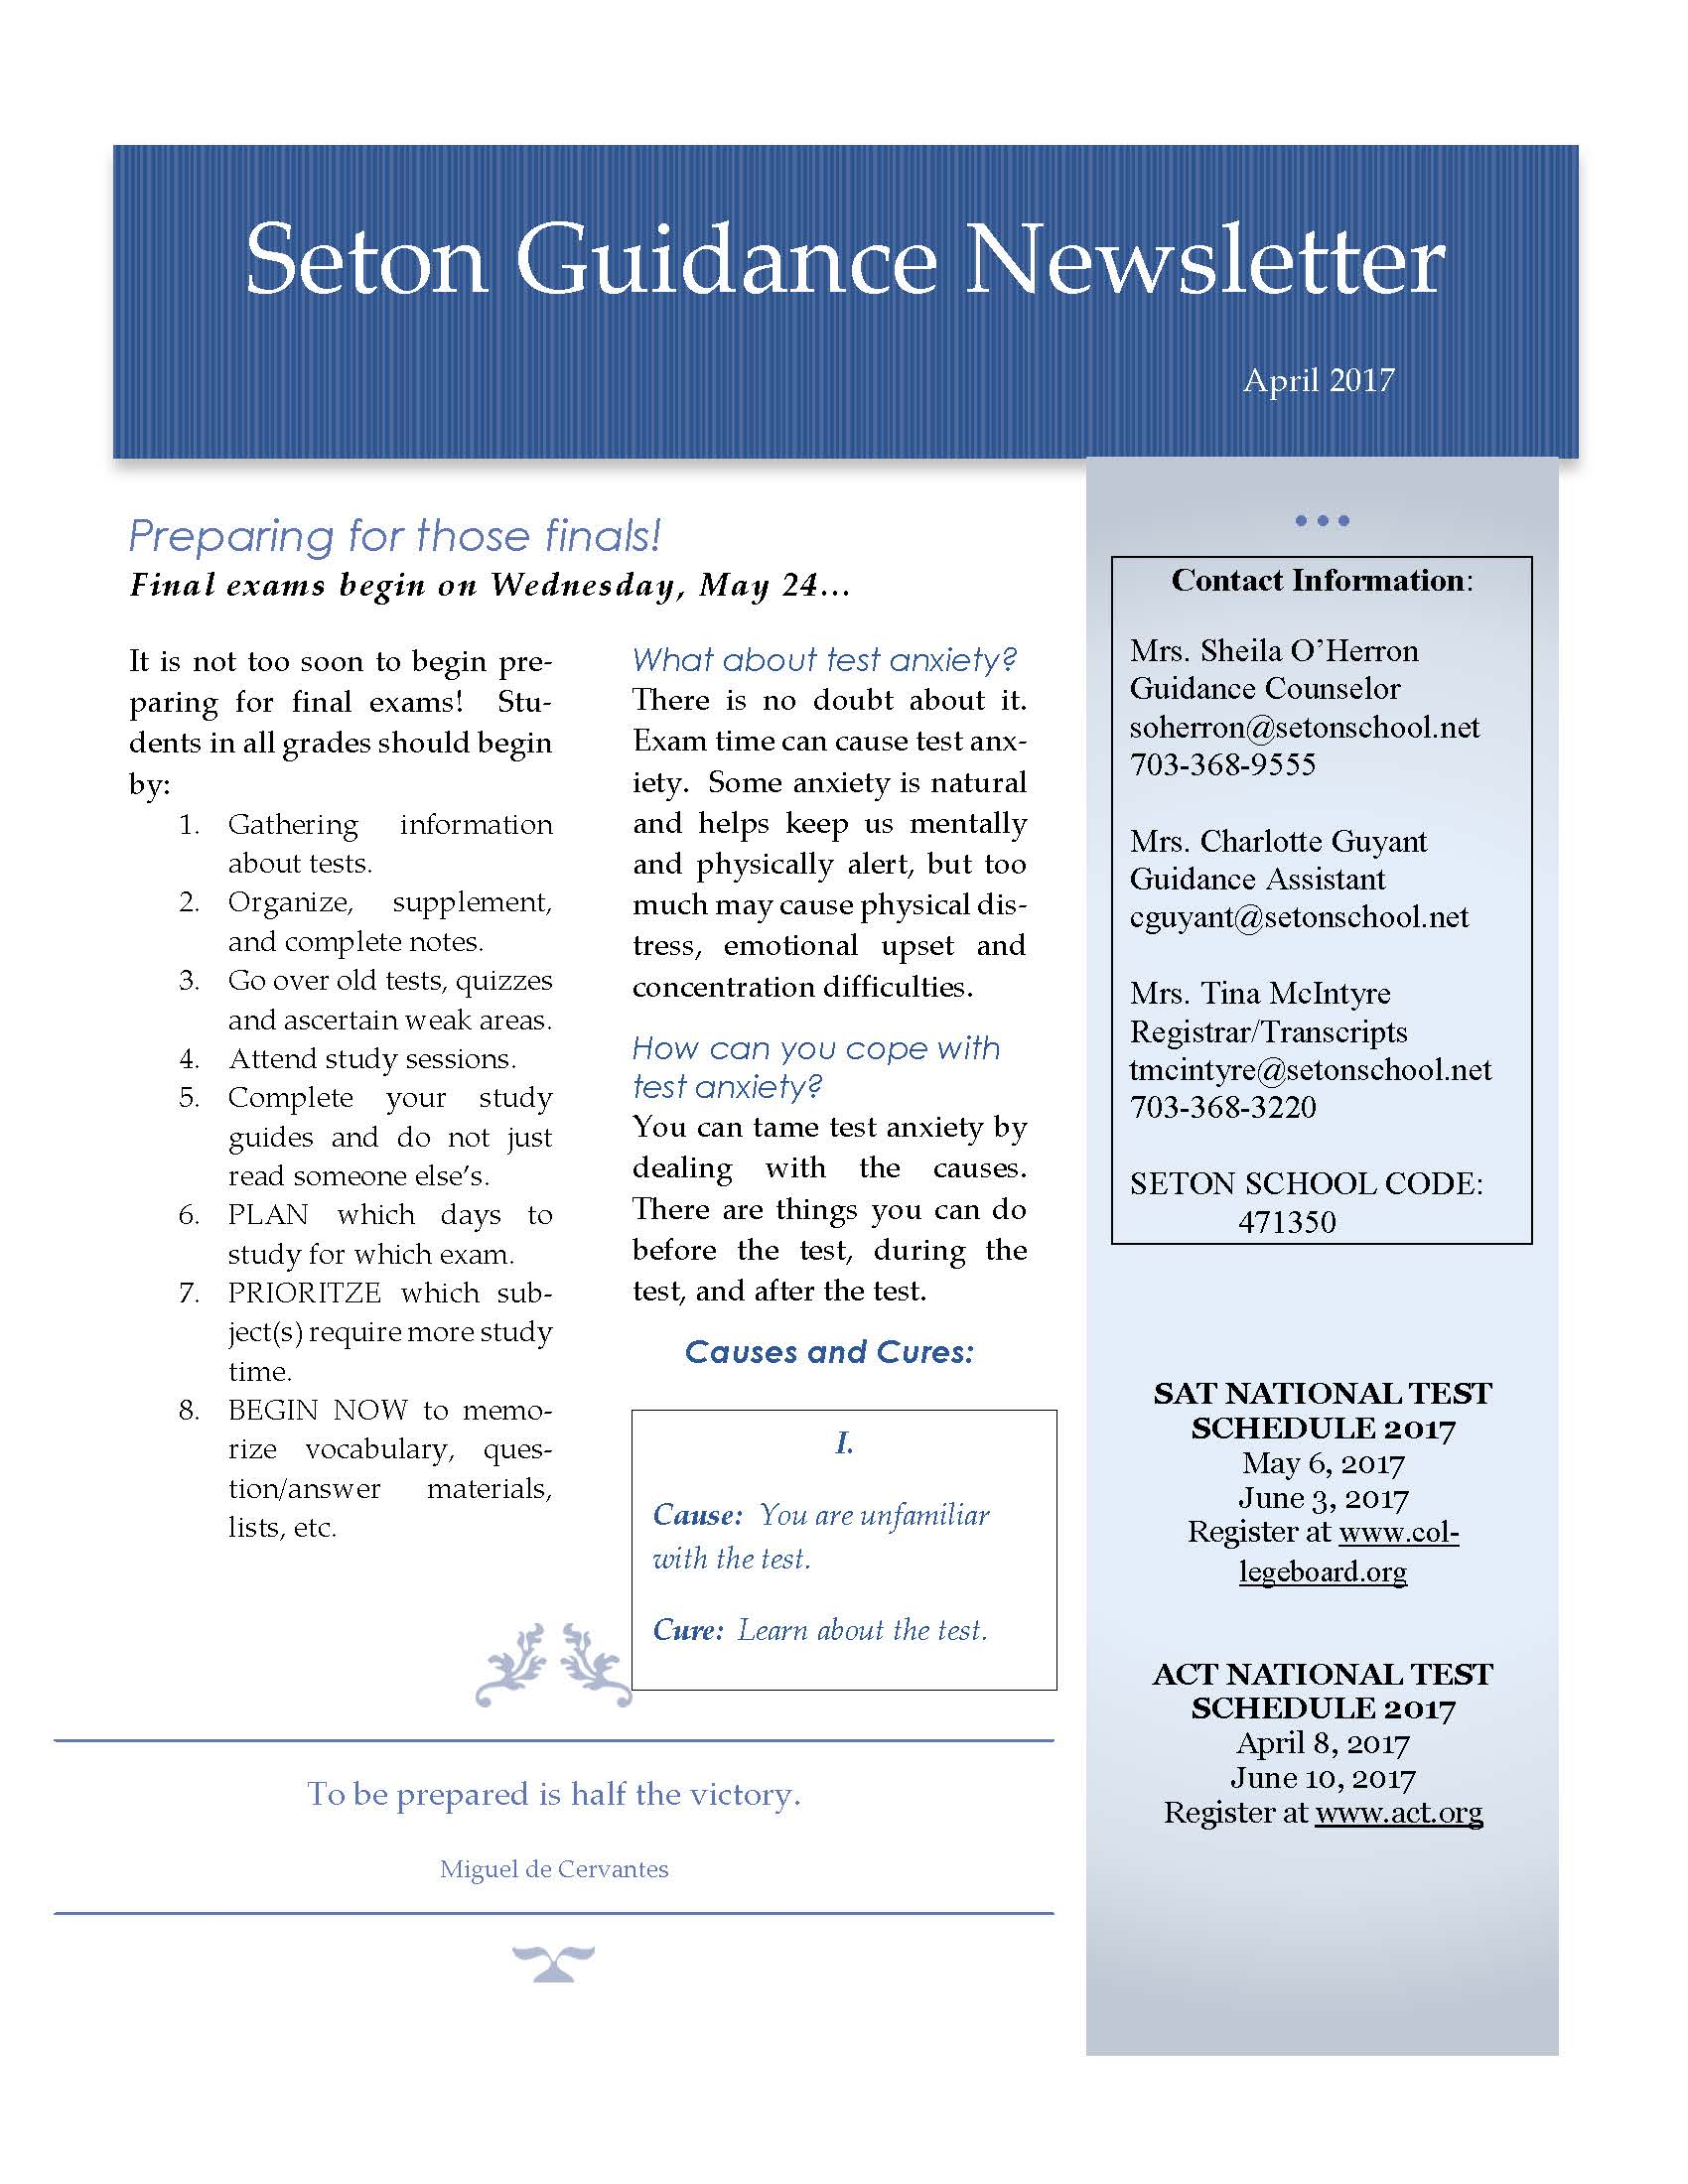 April 2017 Guidance Newsletter